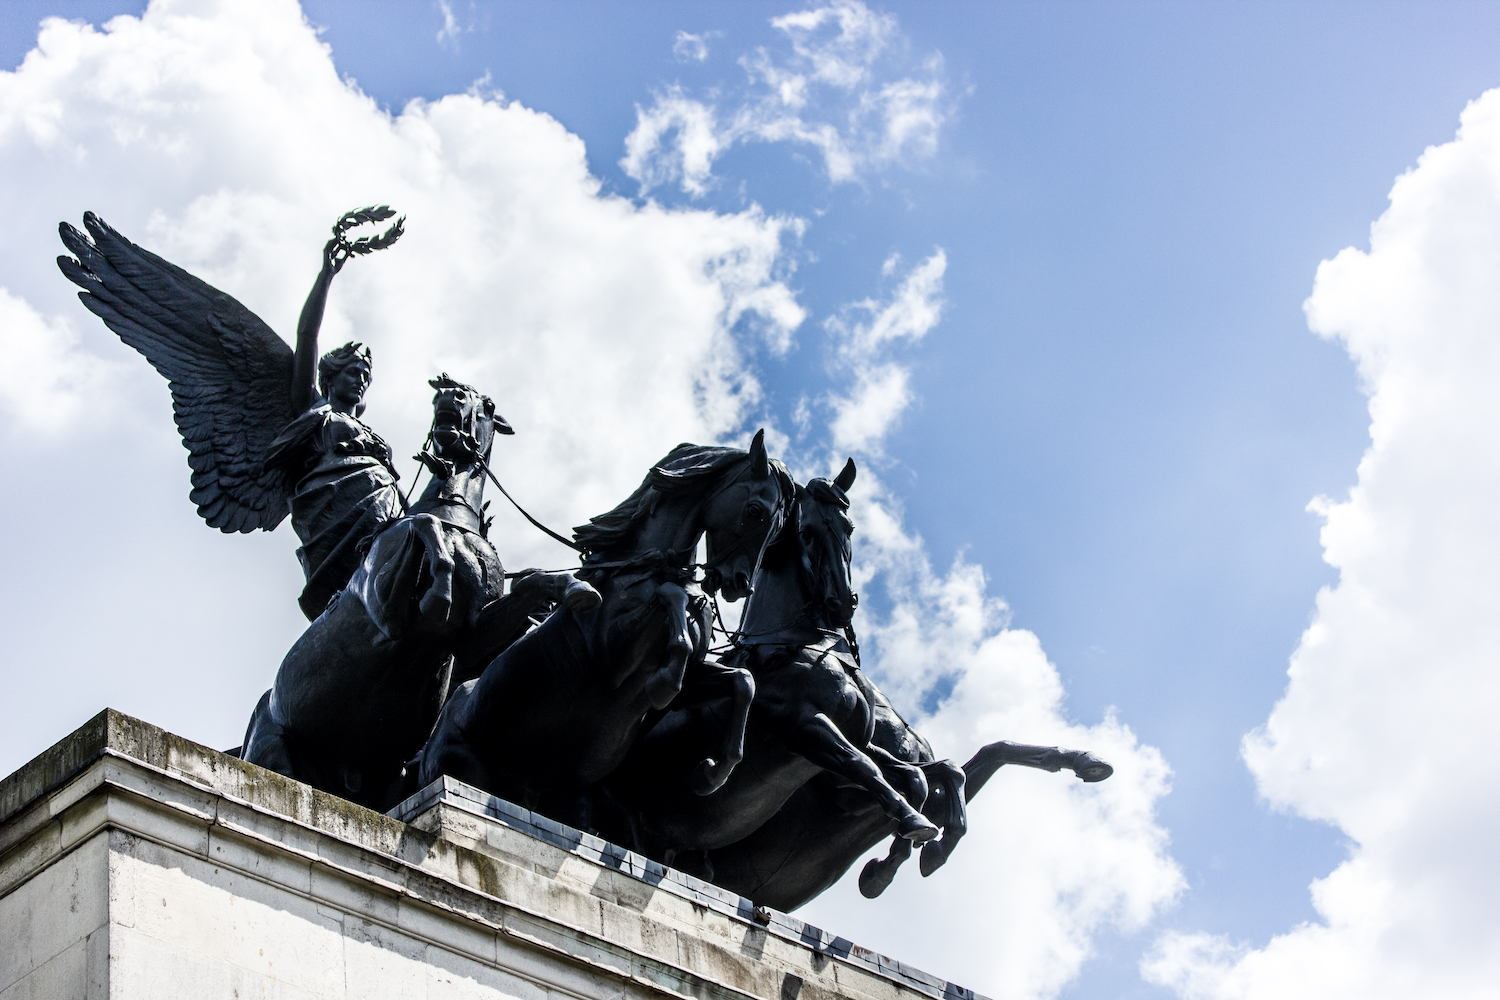 Professional Photography Black Statue Of Woman On Chariots With Three Horses On Top Of Arch With Blue Sky And Clouds At Hyde Park London